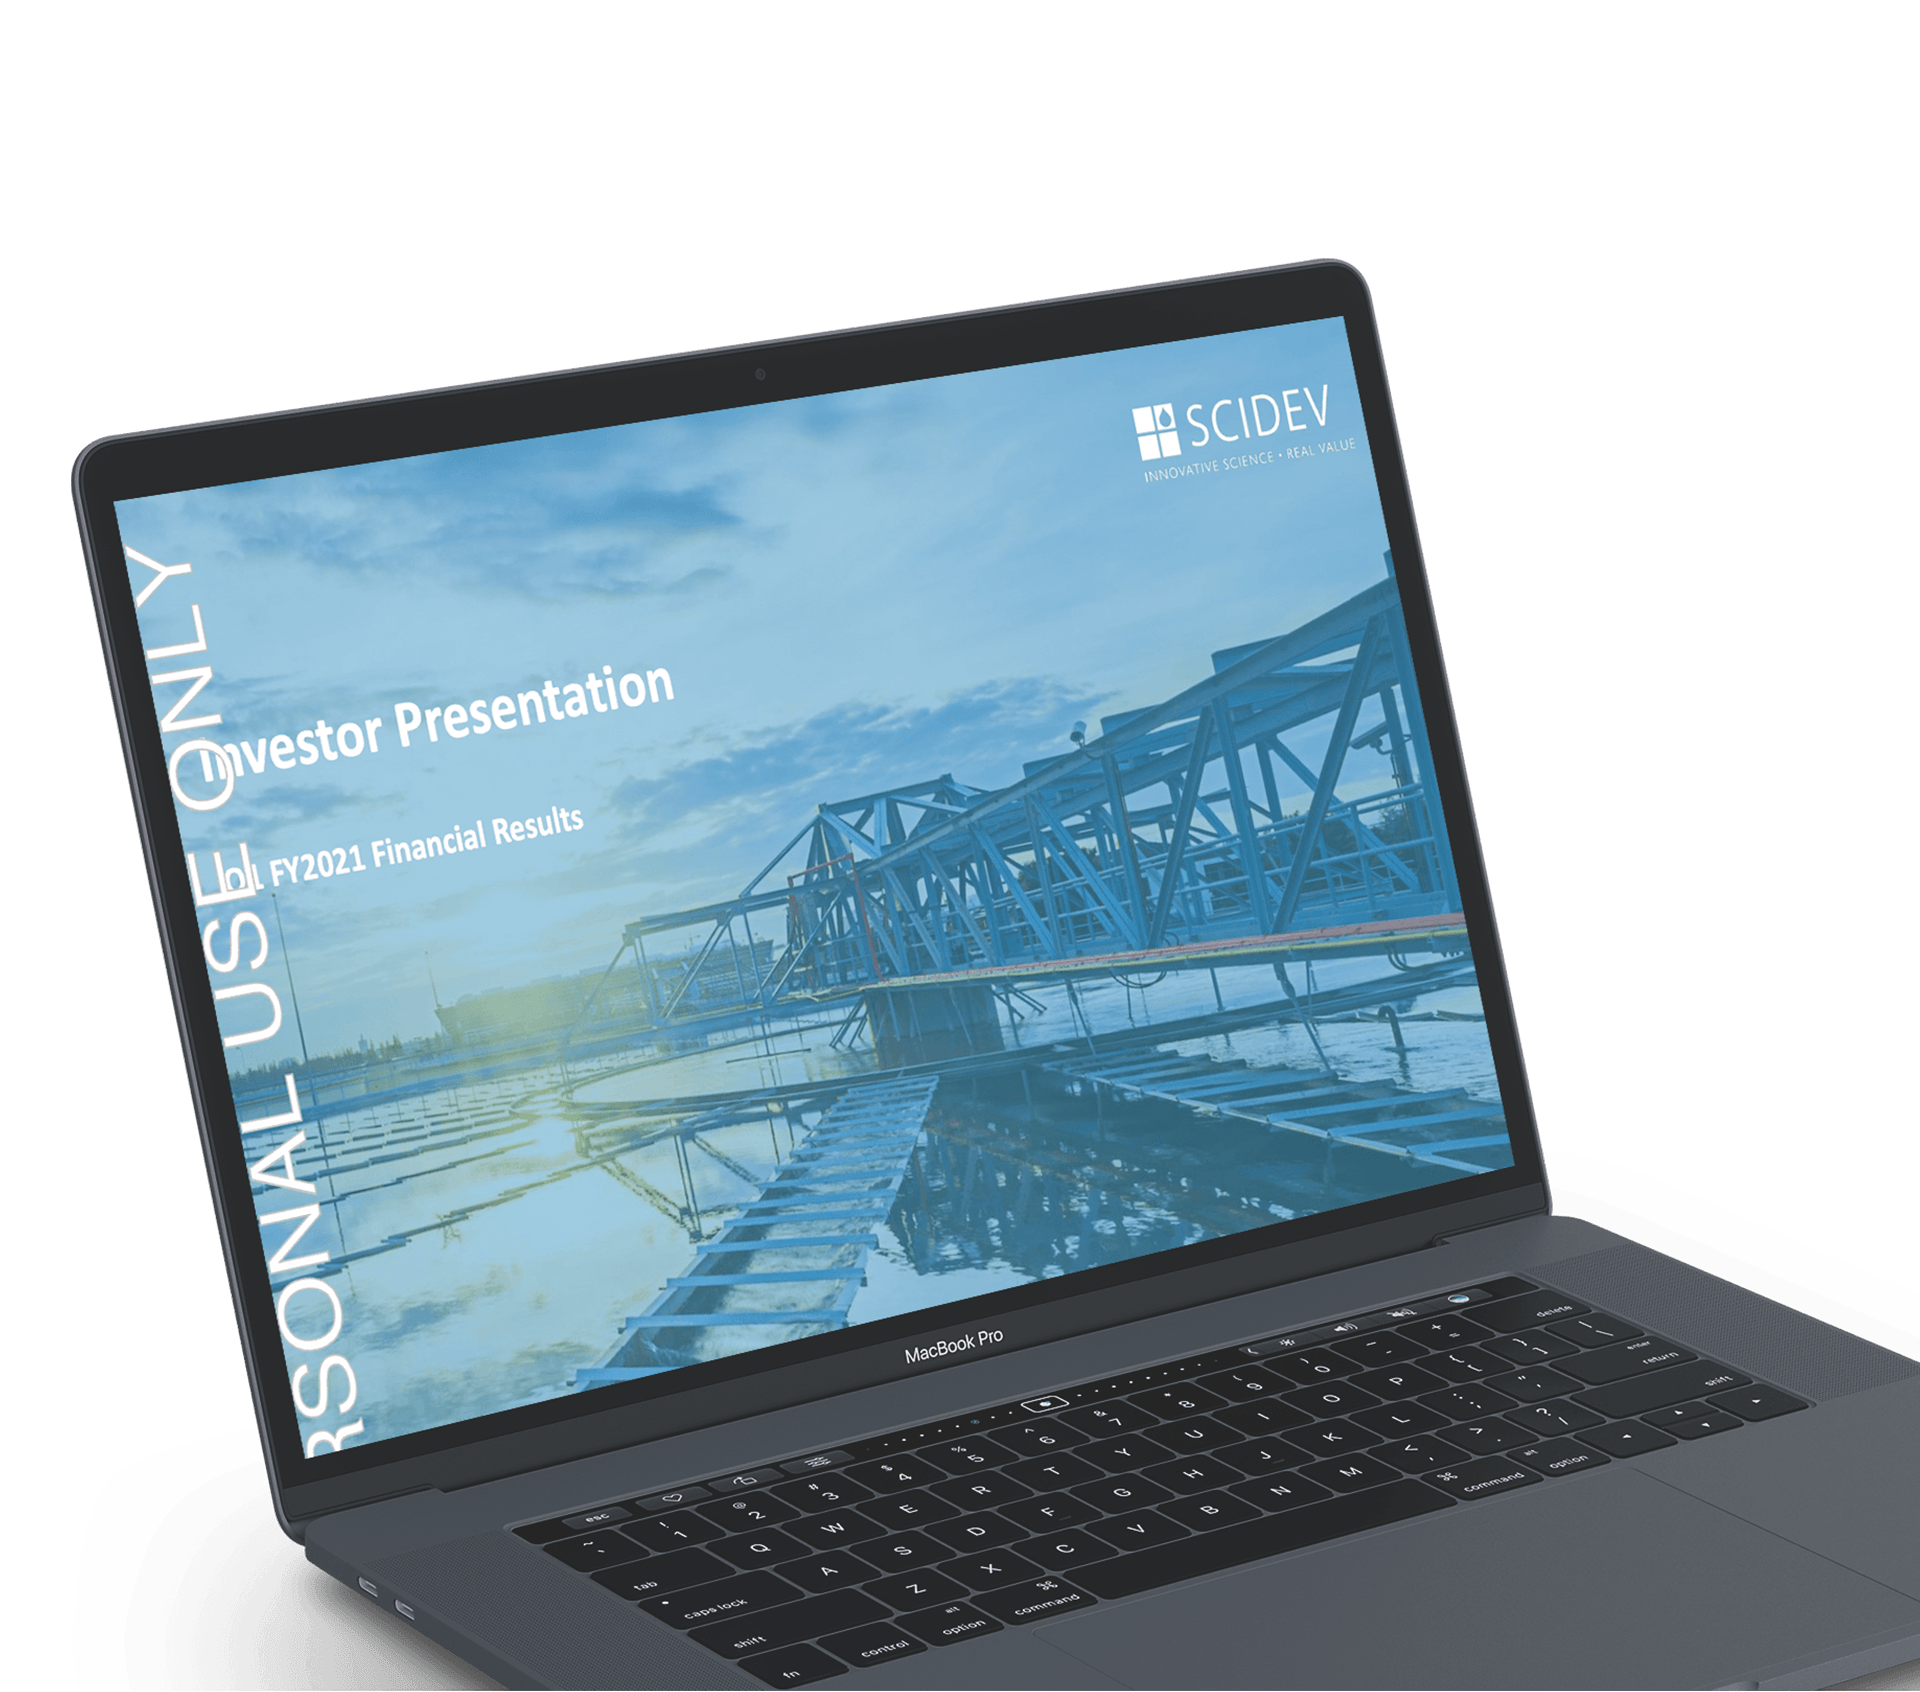 Mockup of a presentation on a laptop before it has been designed by Persuaders